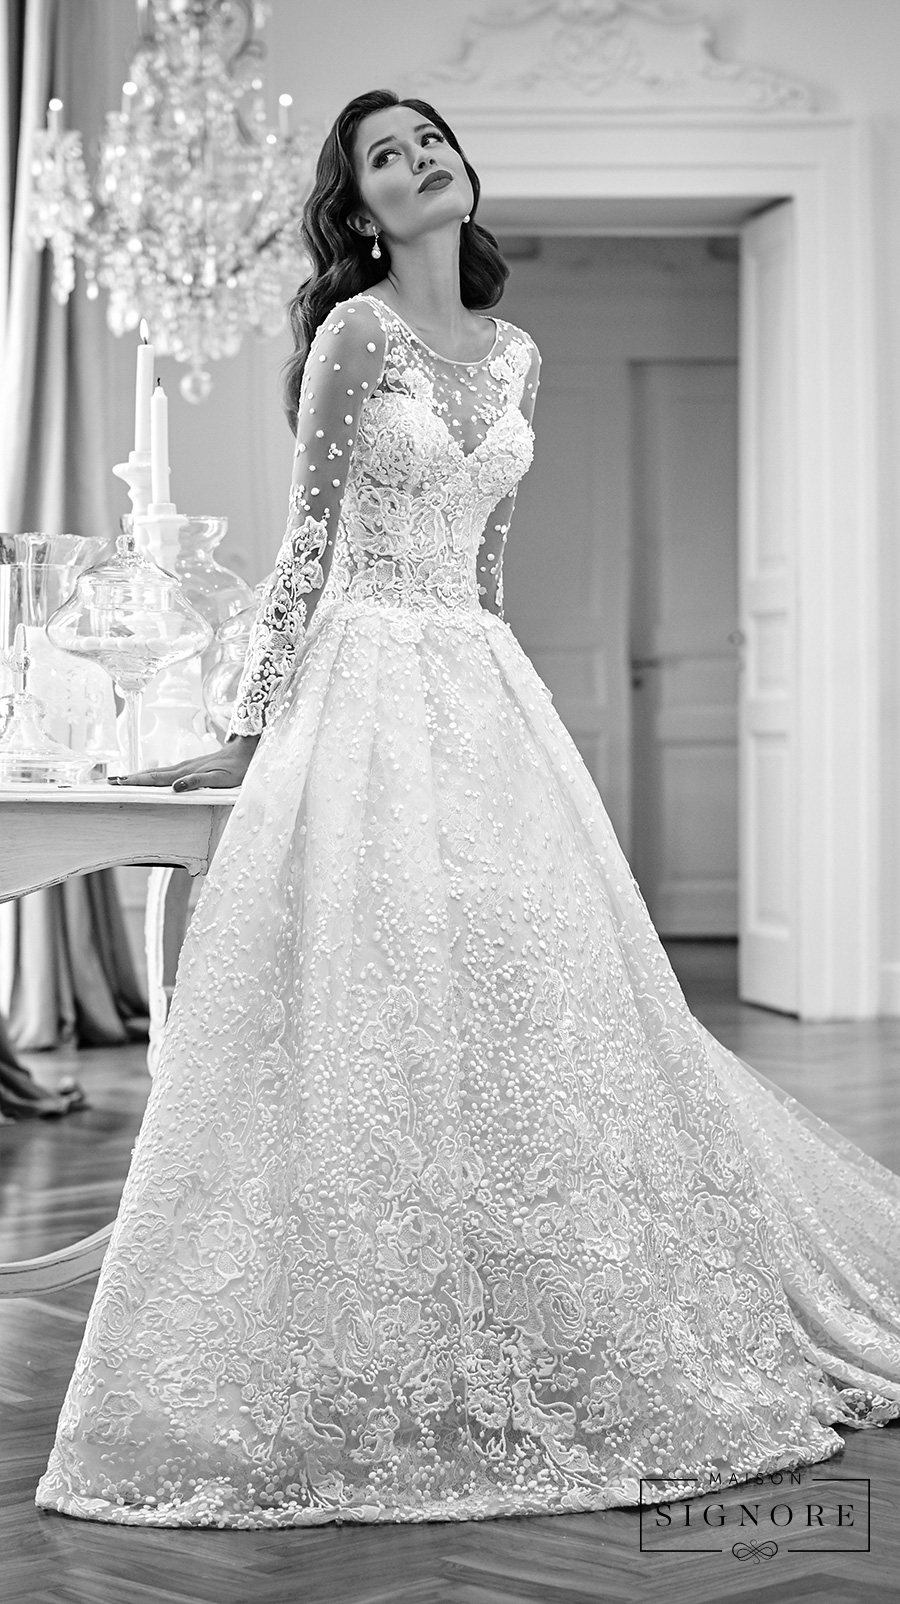 Maison Signore Excellence Long Sleeves Wedding Gown 1